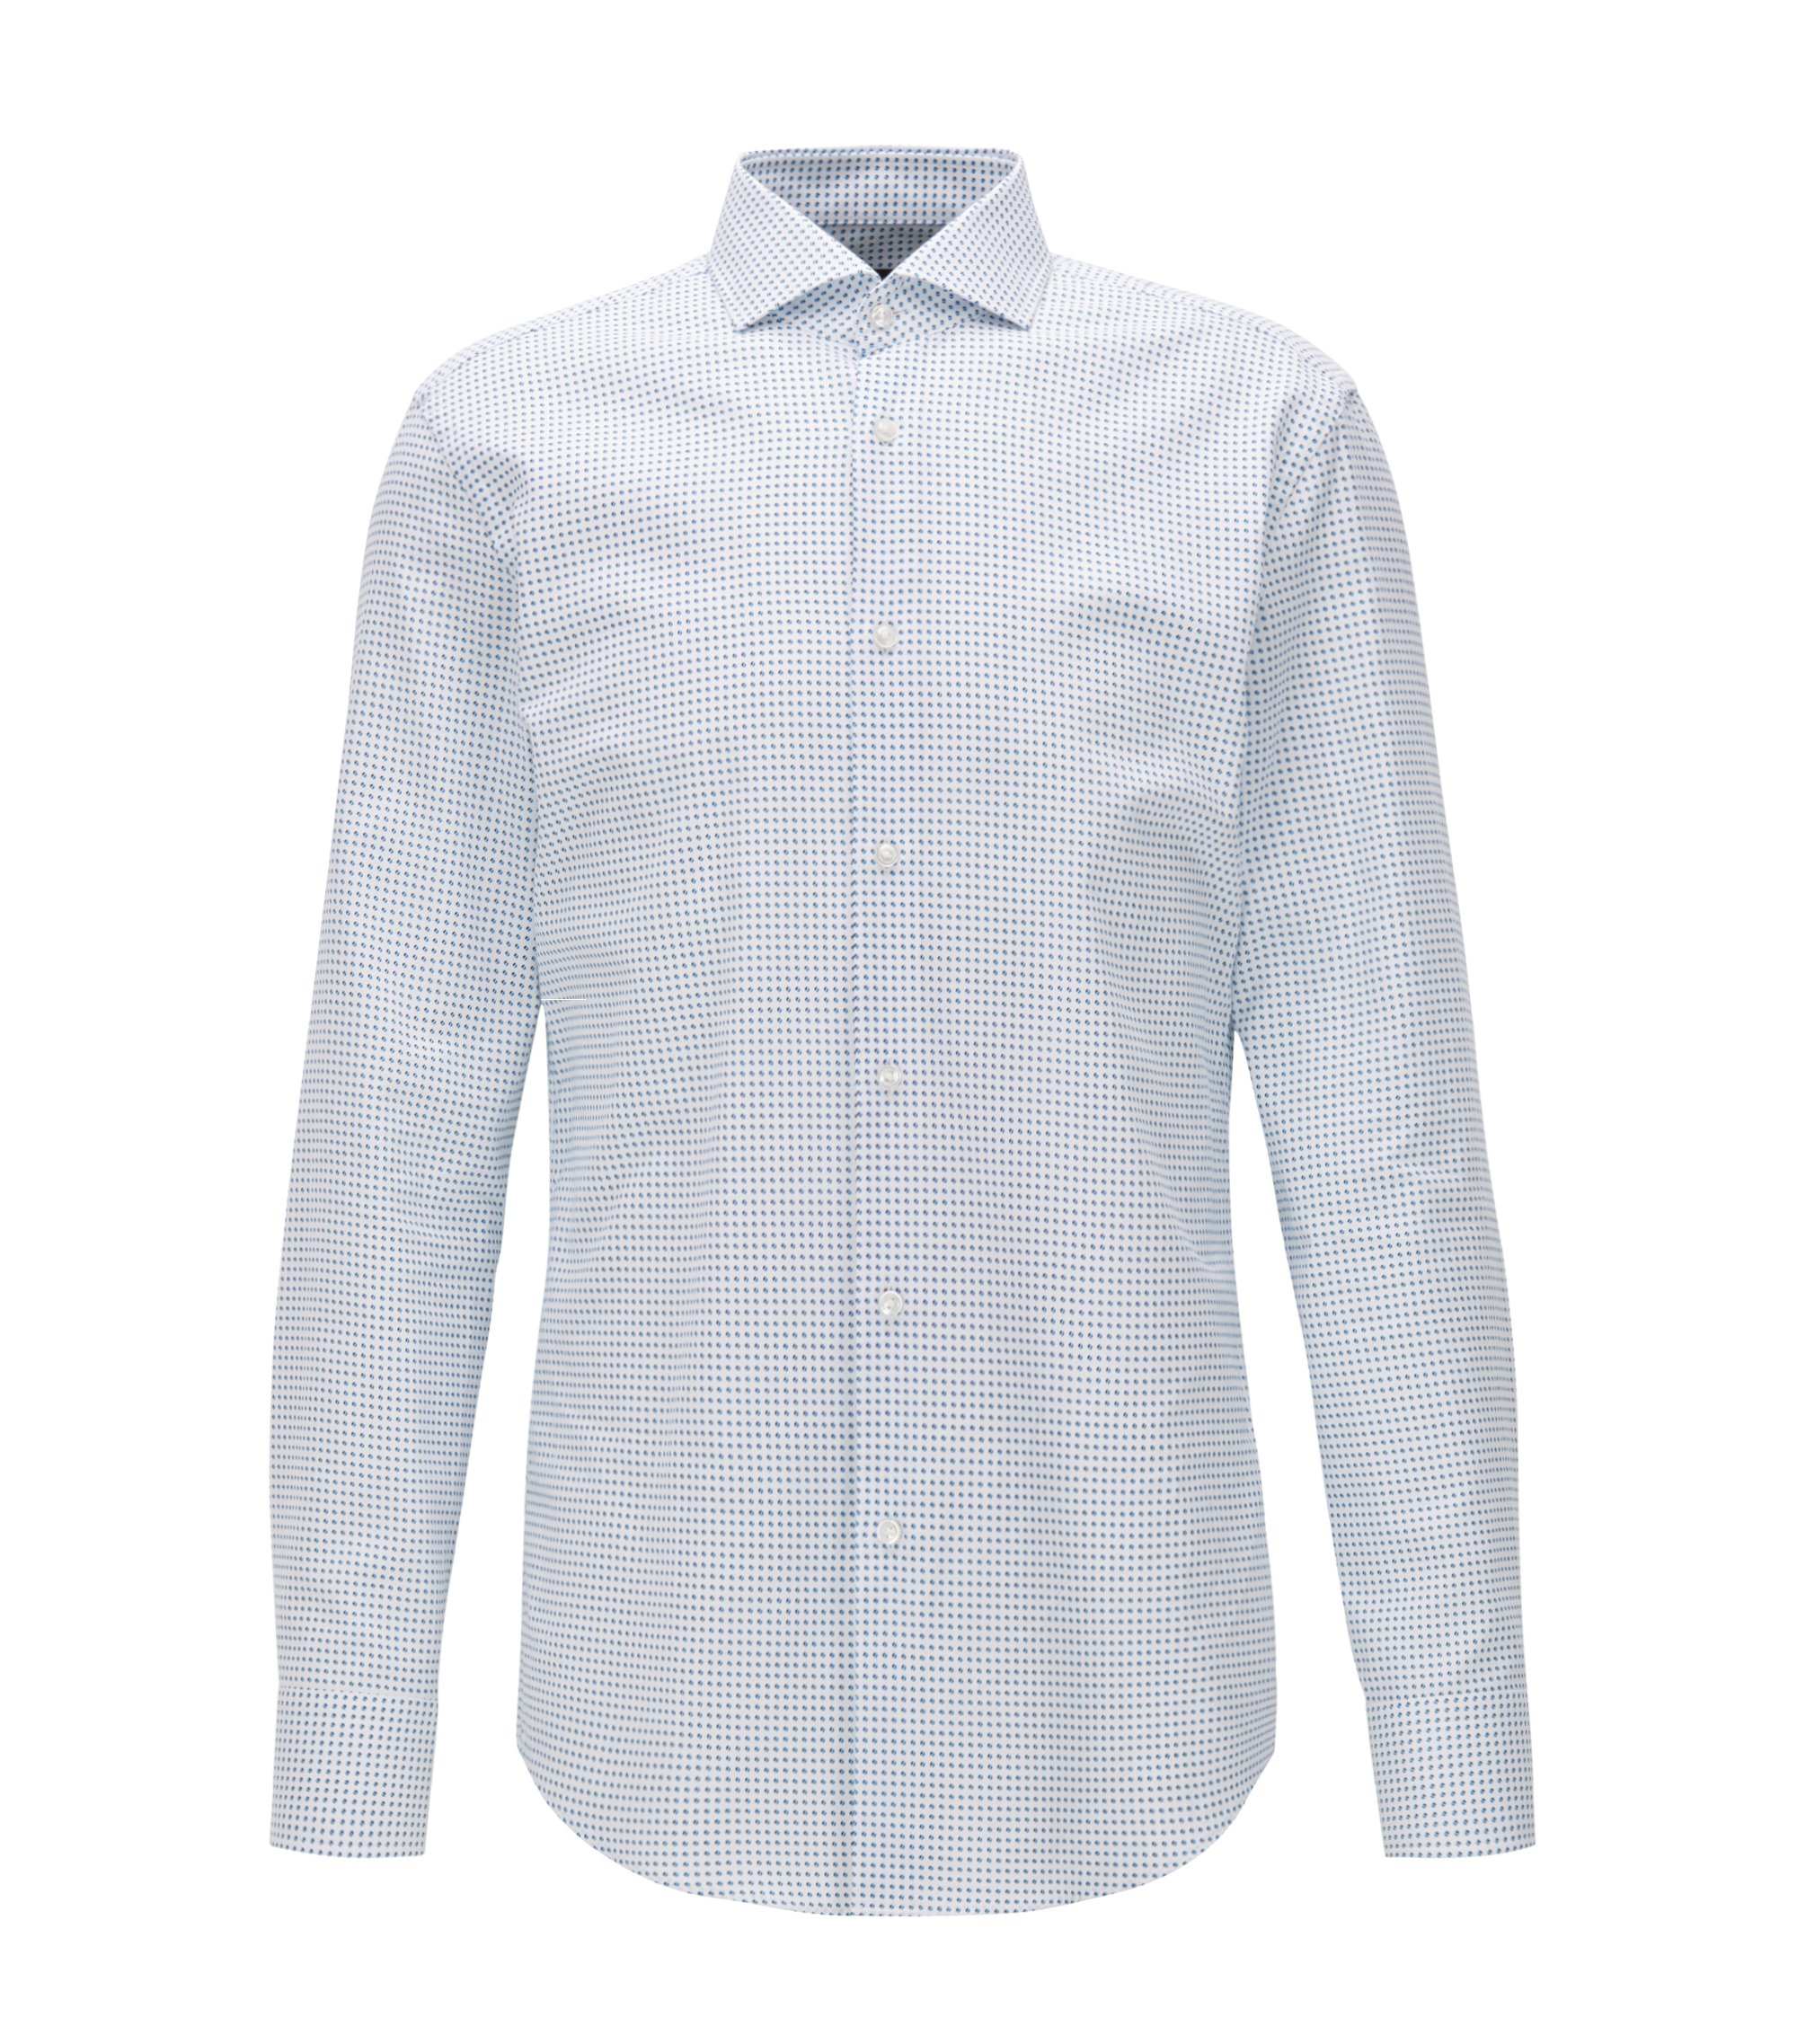 Slim-fit Oxford cotton shirt with rounded motif print, Blue